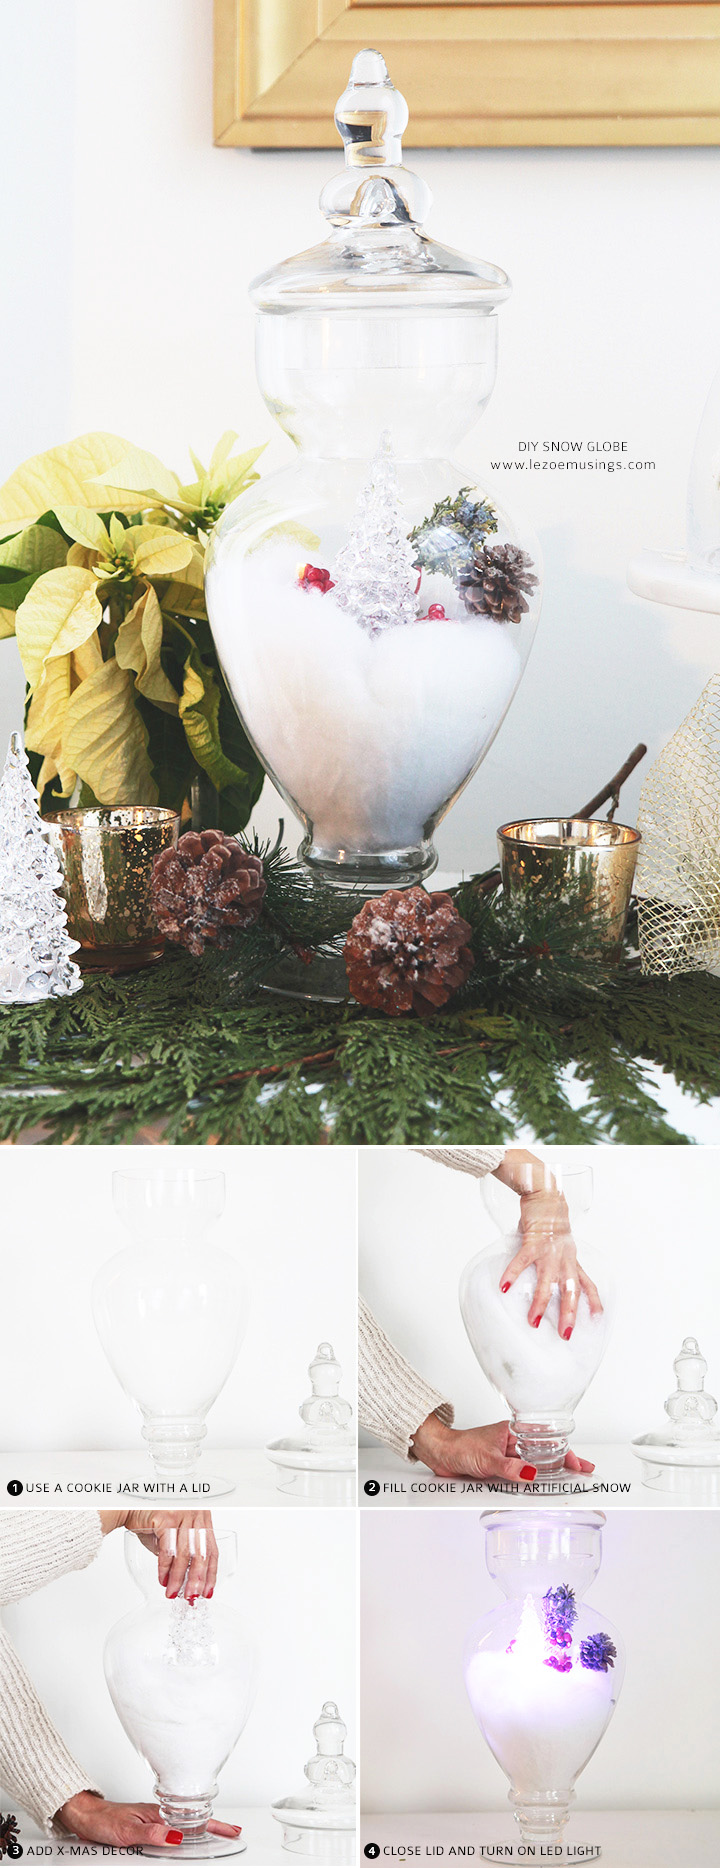 DIY Snow Globe Village by Le Zoe Musings5